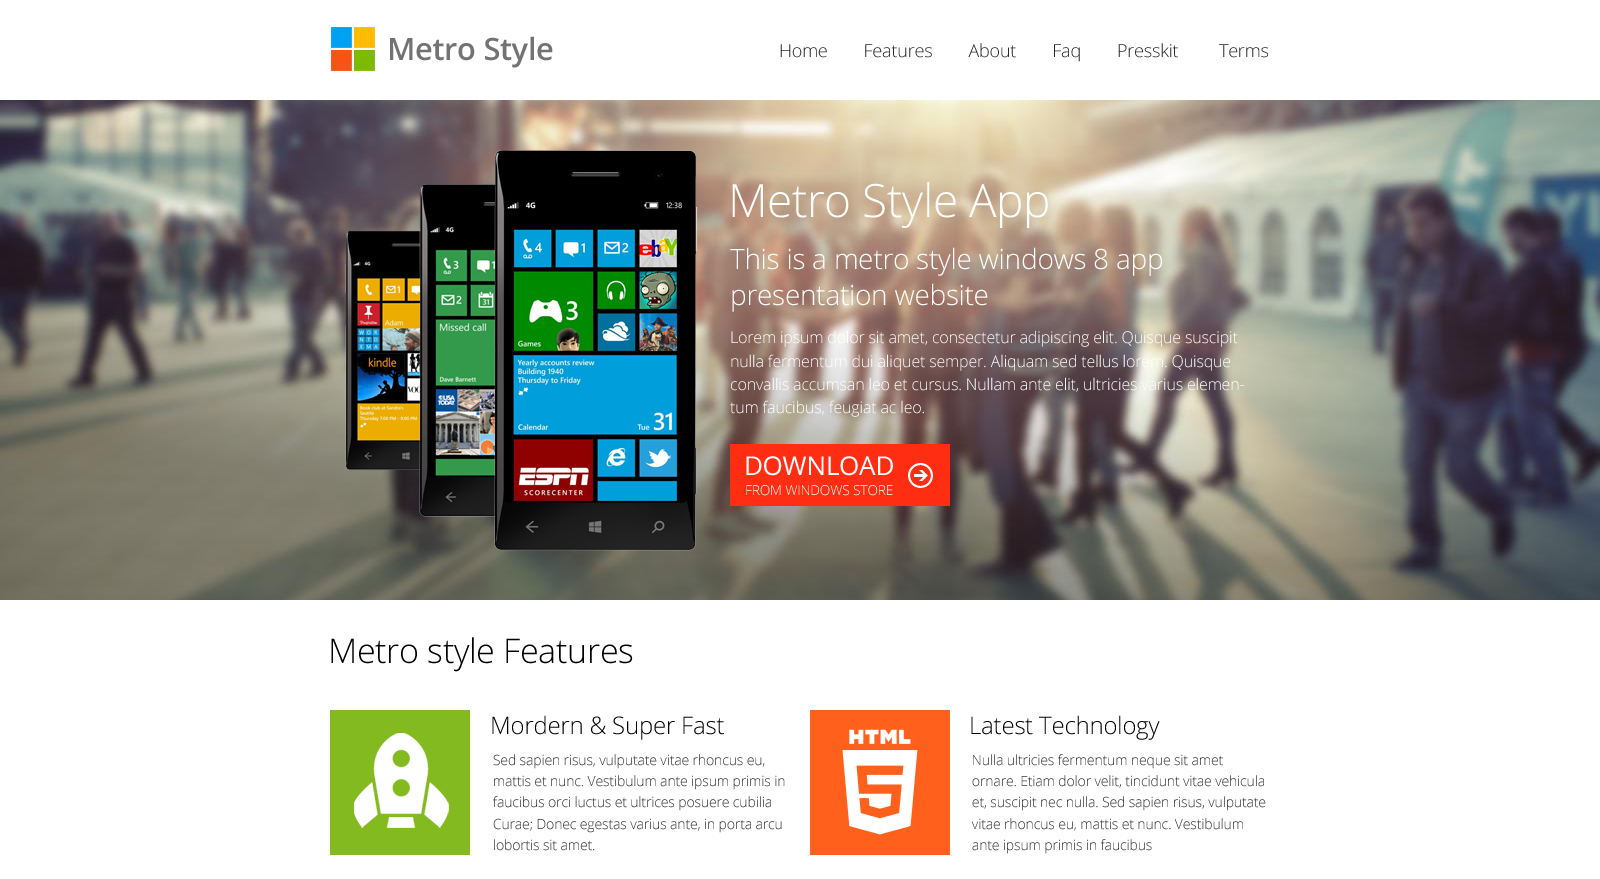 windows 8 metro app presentation website template, Powerpoint templates